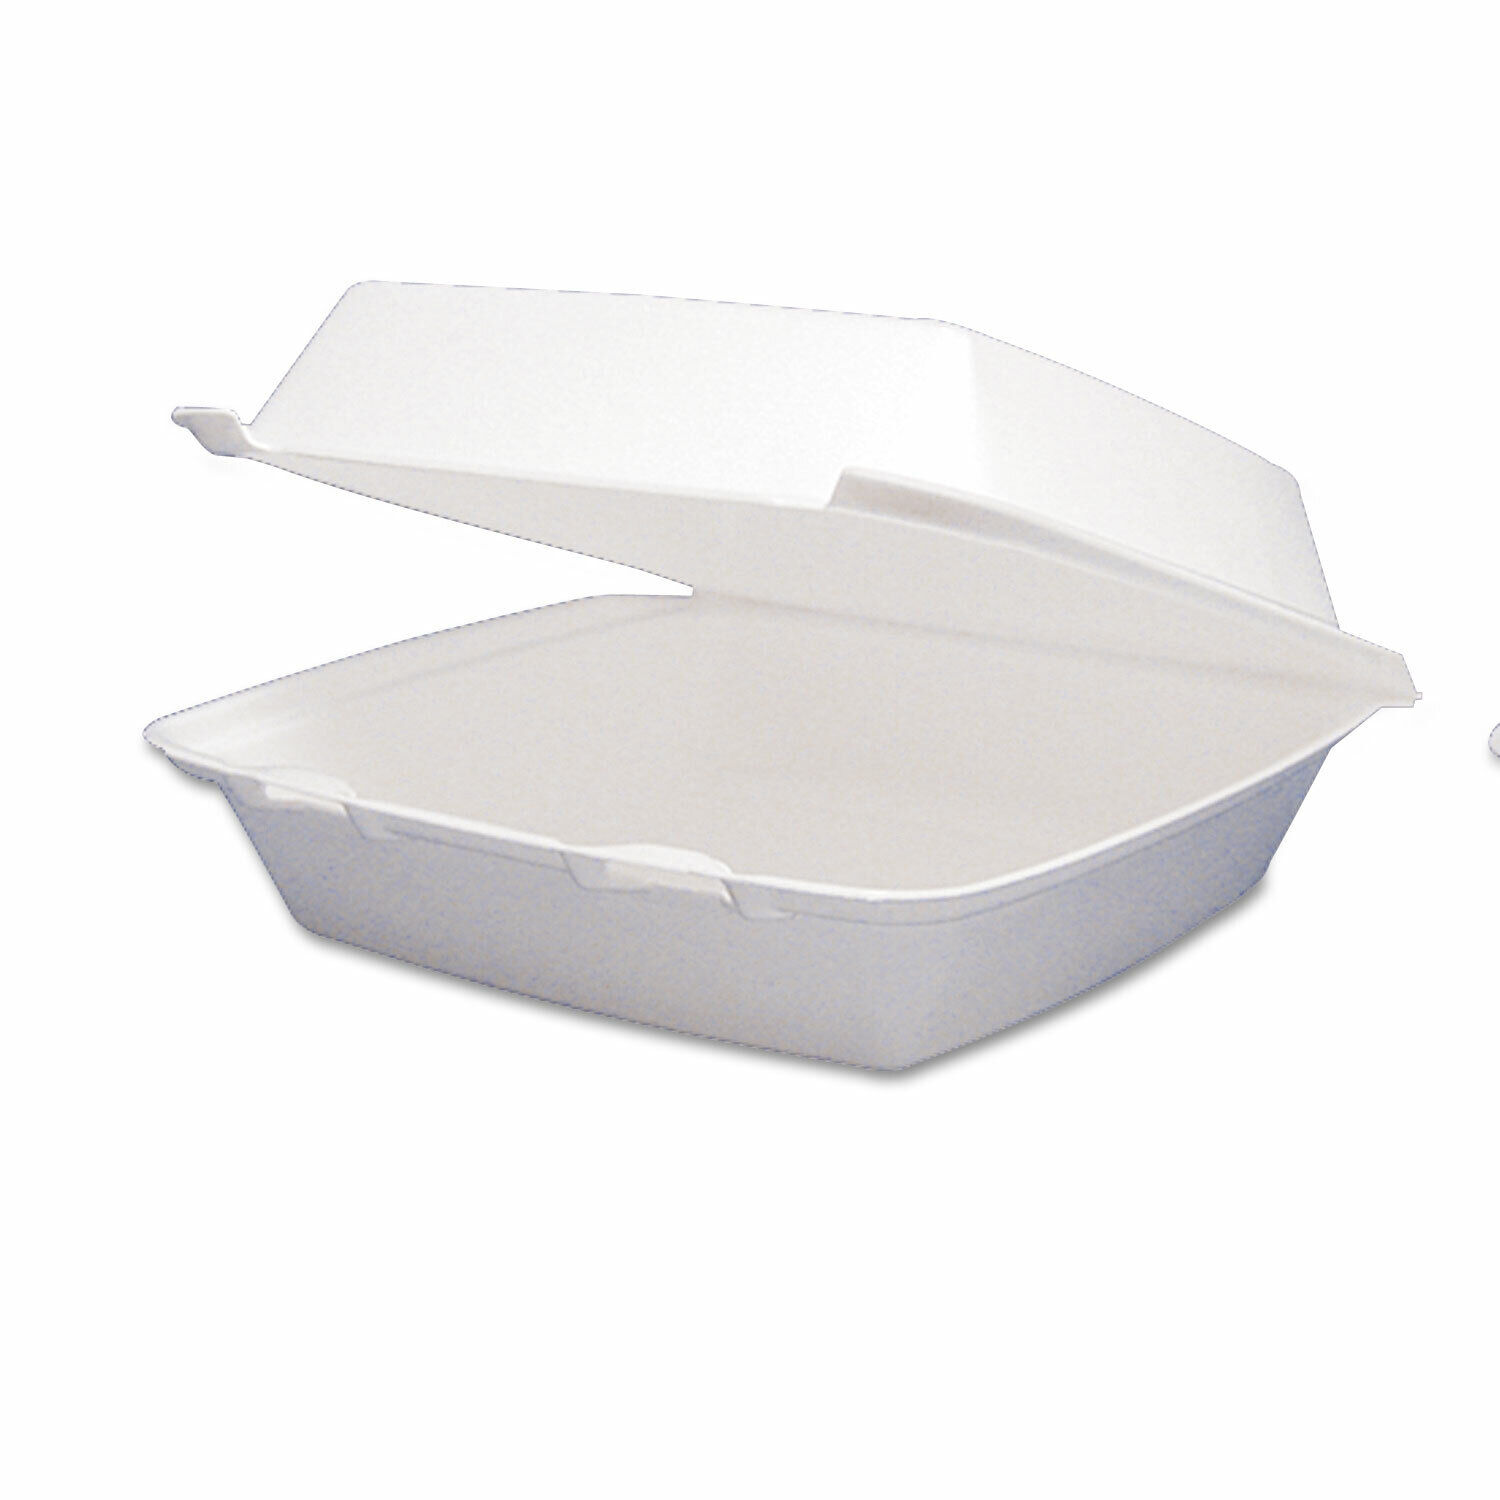 Carryout Food Container, Foam Hinged 1-Comp, 9 1 2 x 9 1 4 x 3, 200 Carton